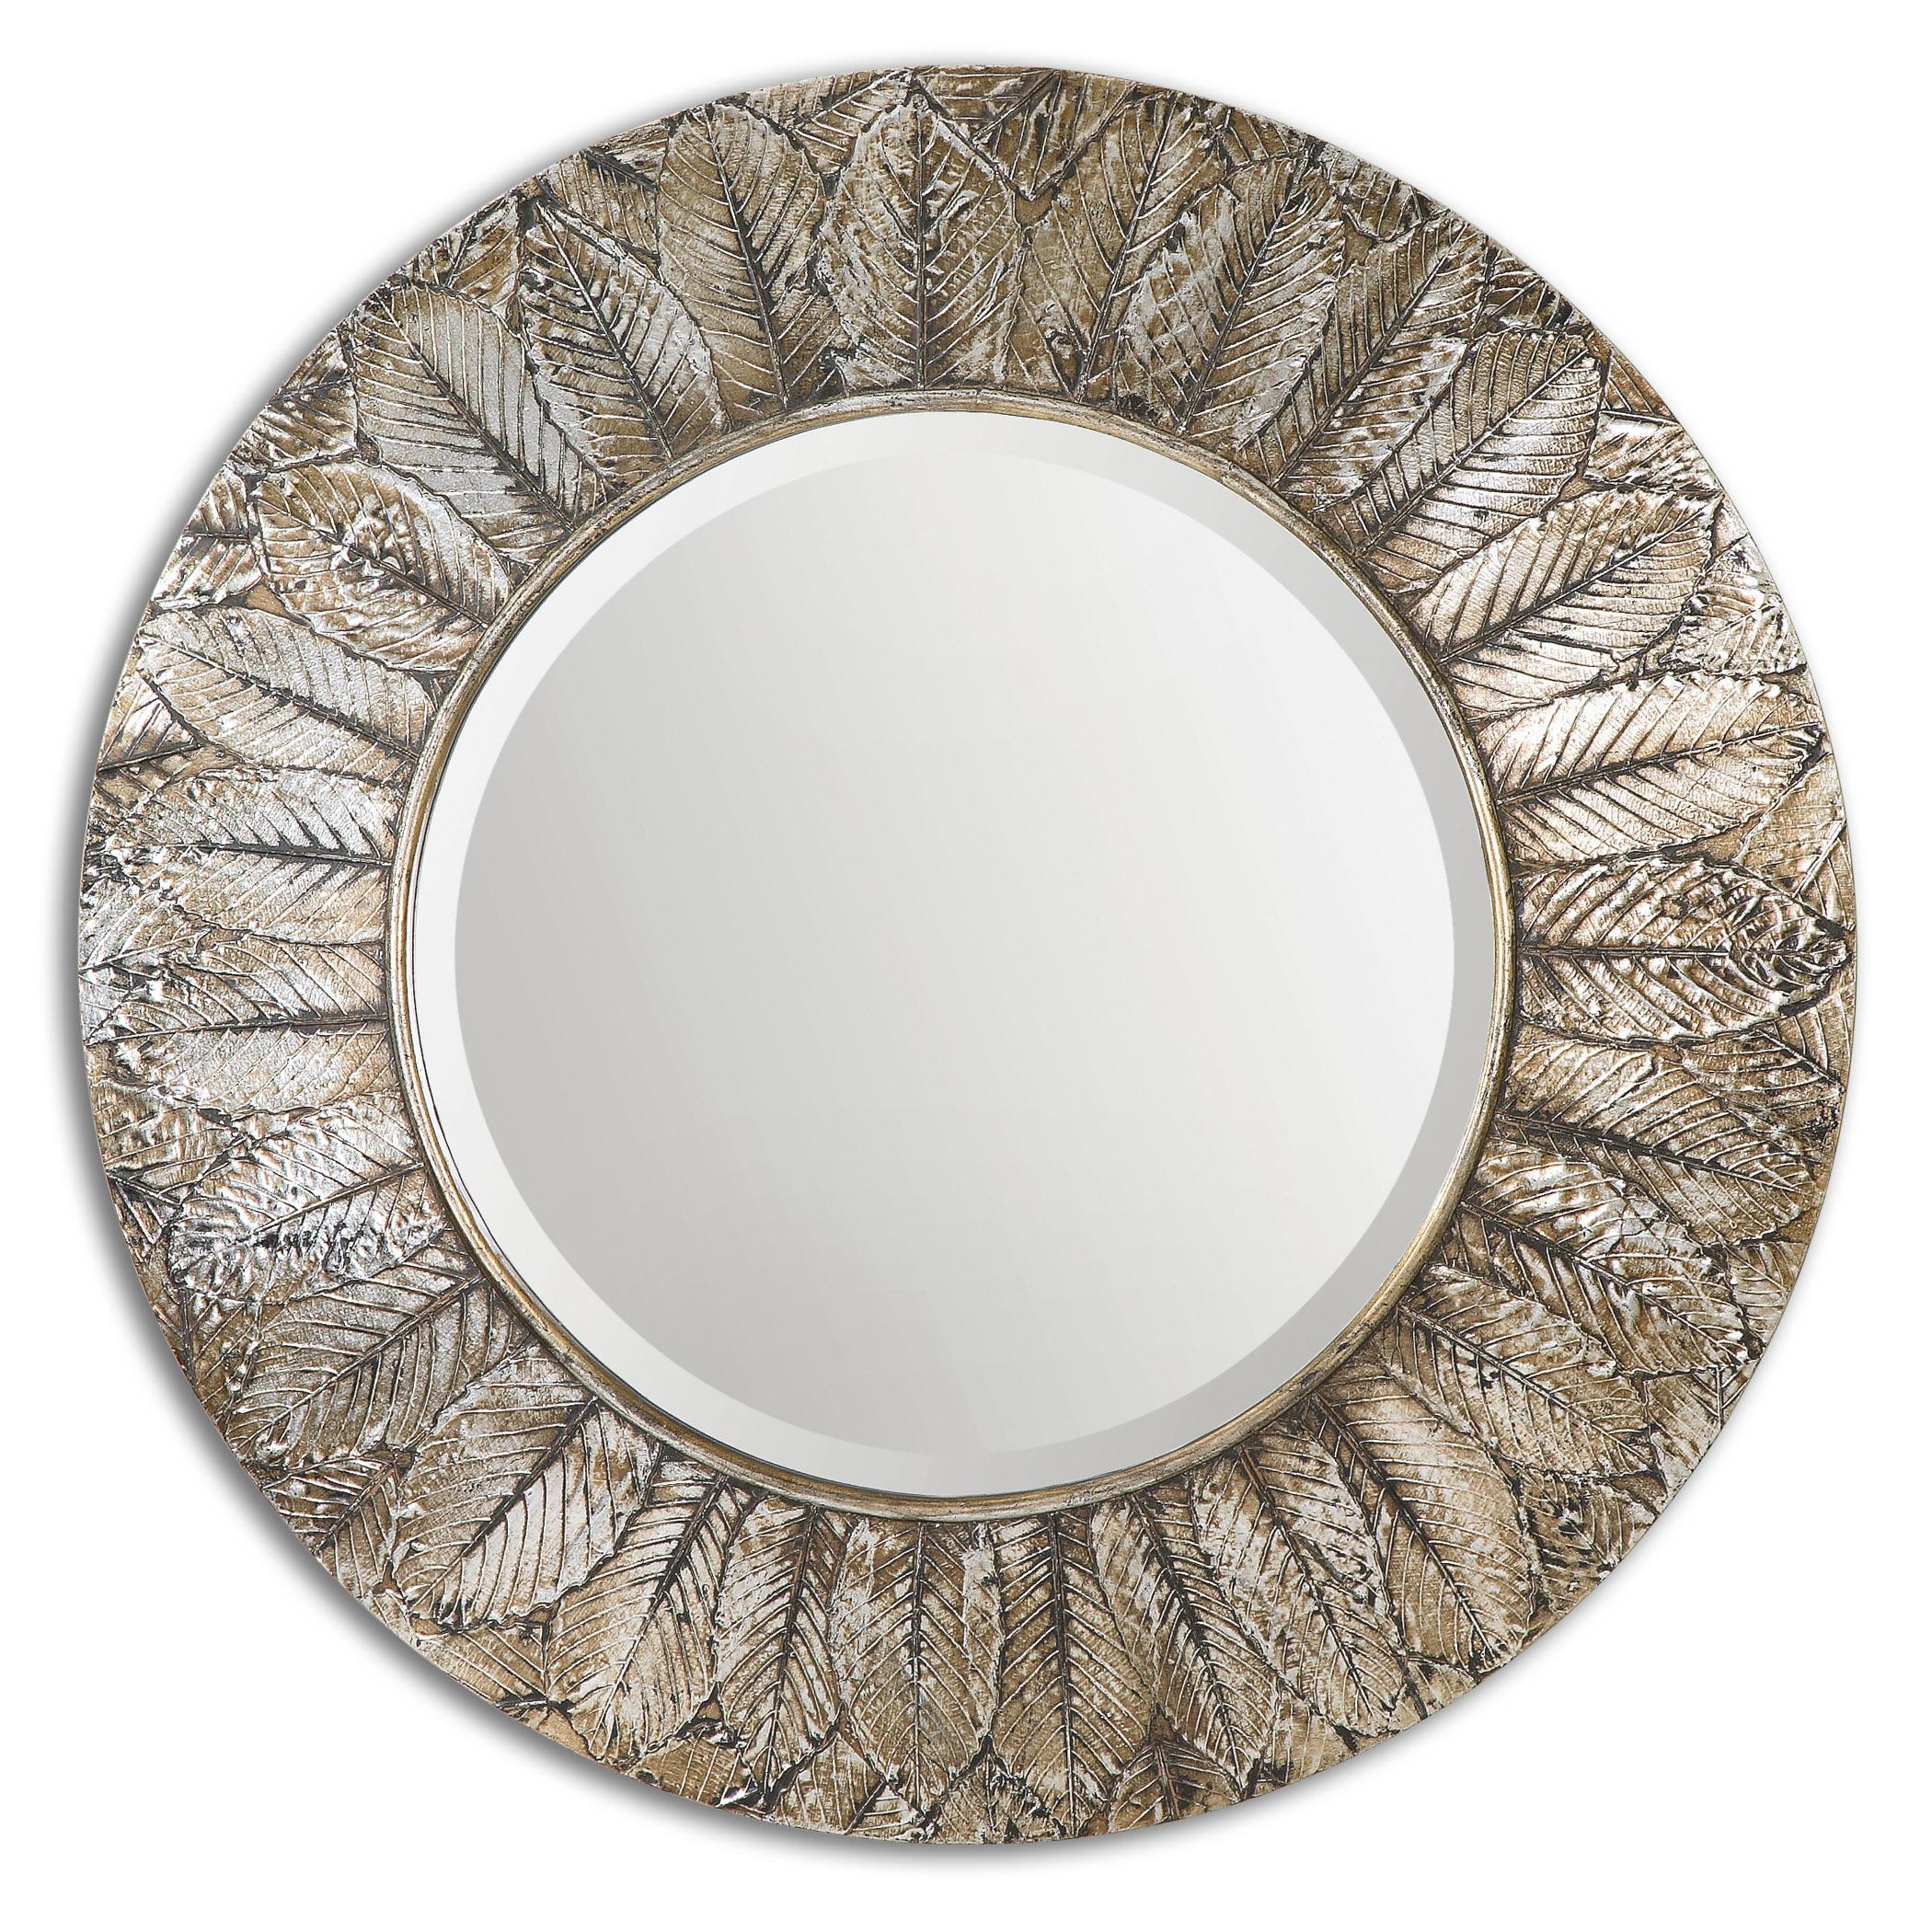 Uttermost Mirrors Foliage Round Silver Leaf Mirror - Item Number: 07065